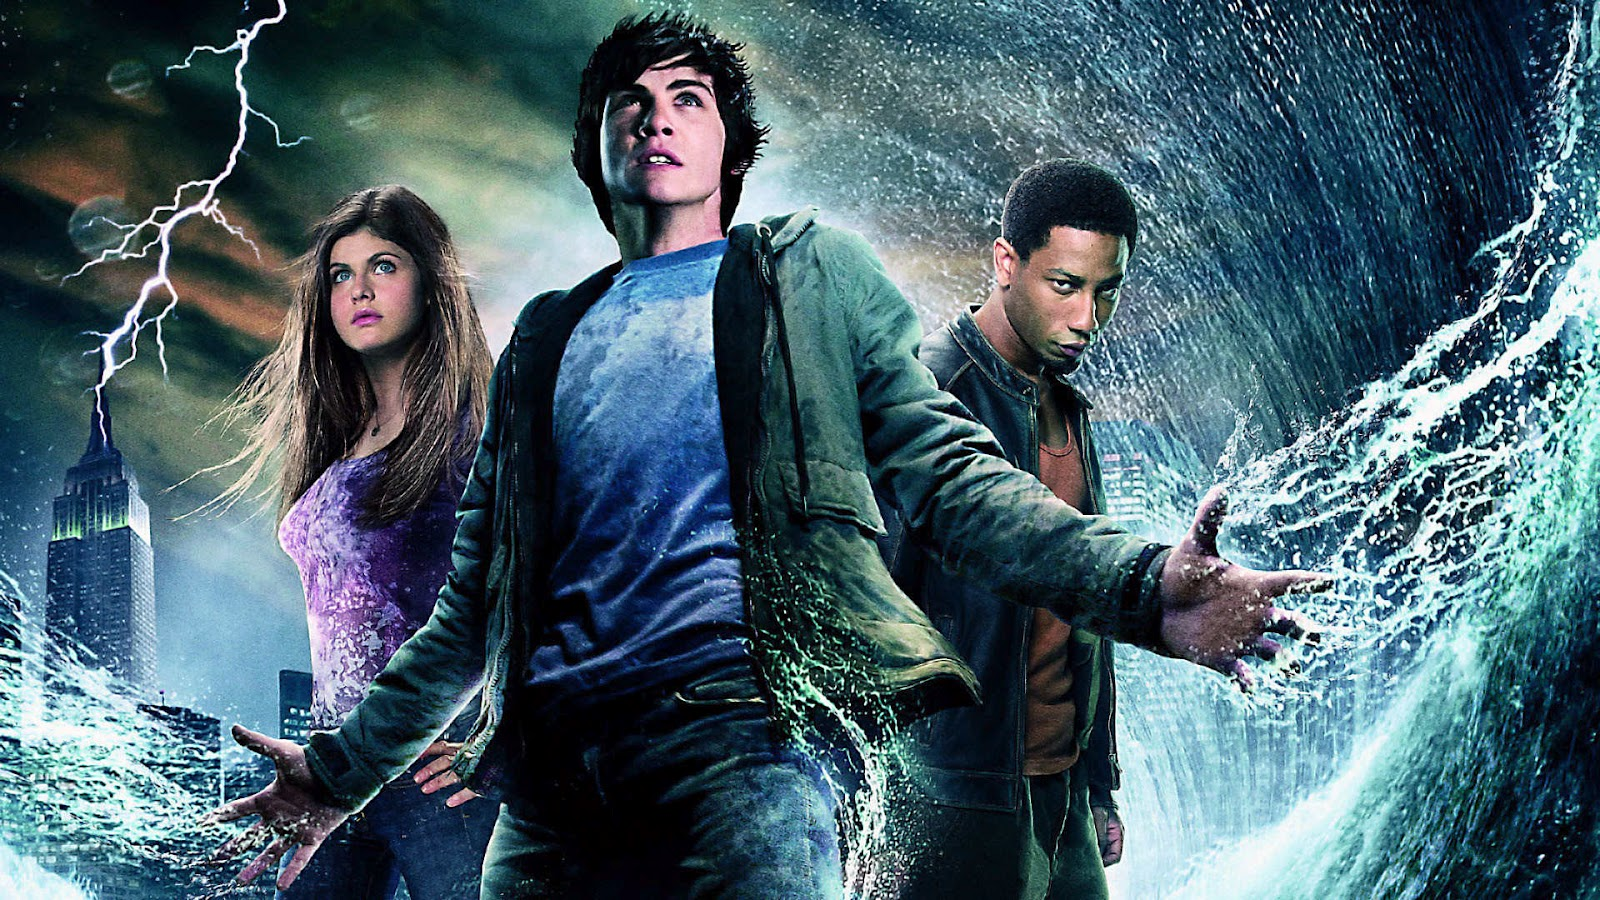 percy jackson full movie